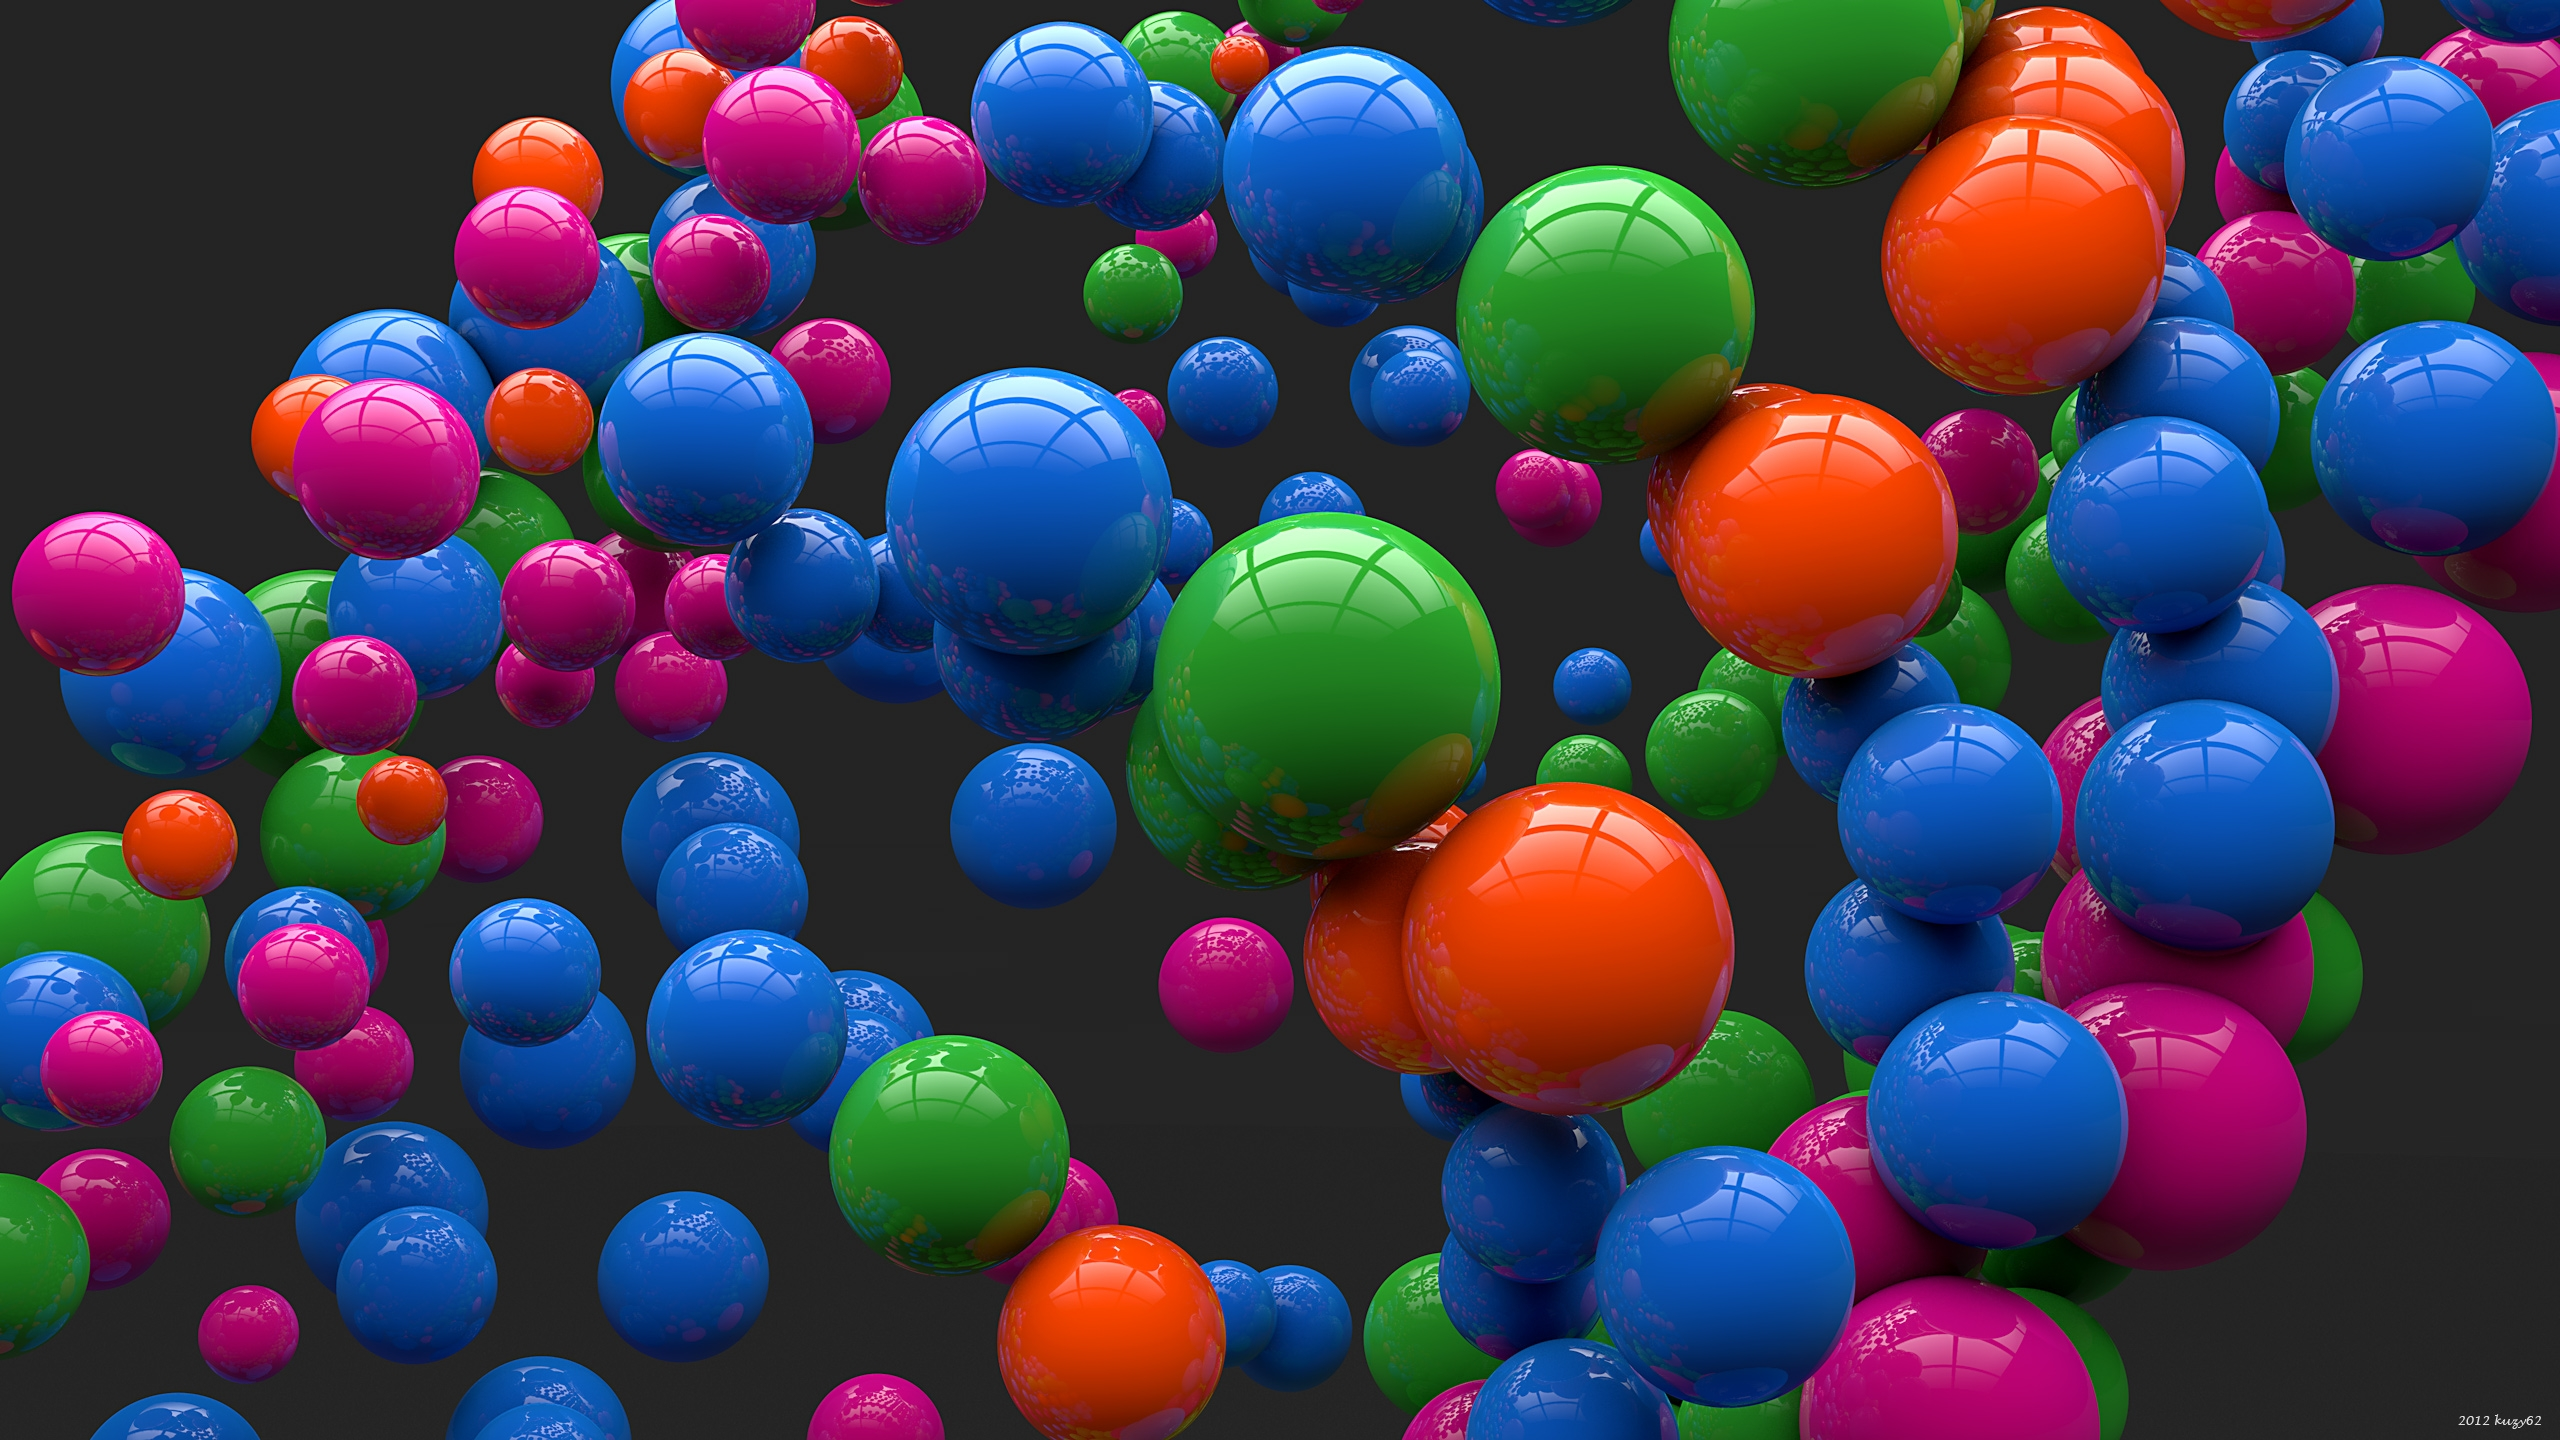 Wallpaper Balloons, Colorful, Bright